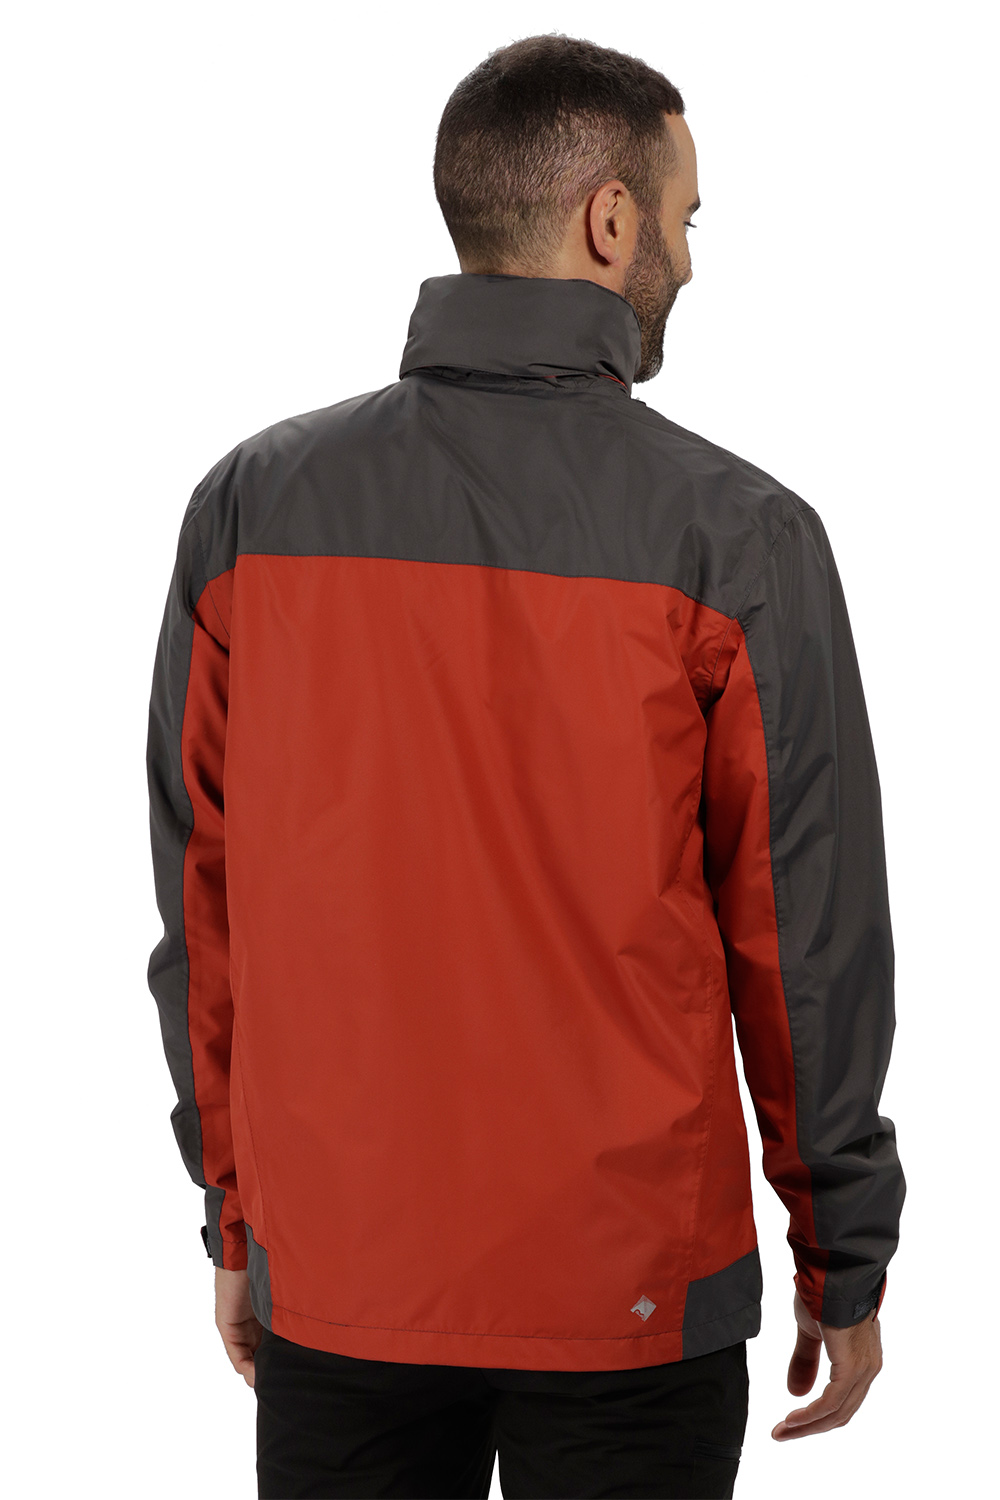 Regatta-Mens-Calderdale-II-Jacket-Waterproof-Breathable-Isotex-5000-Hooded-Coat thumbnail 16